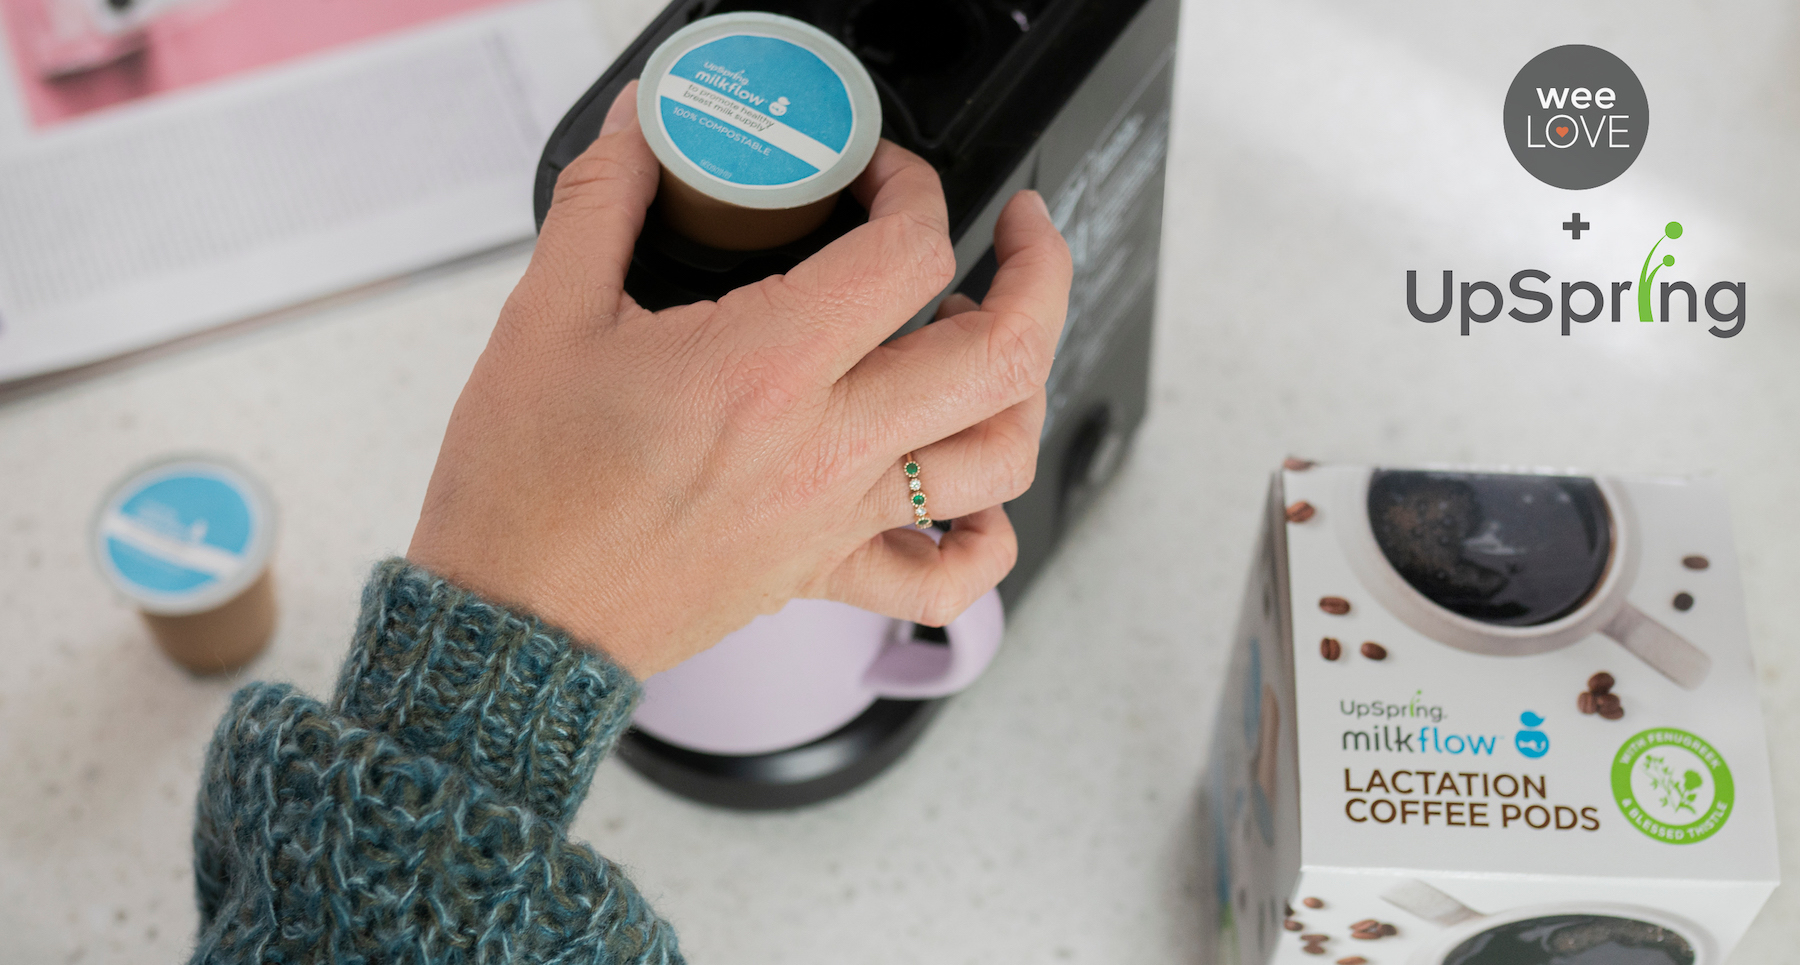 You can see a hand placing an UpSpring Milkflow Lactation Coffee Pod into a Keurig-style coffee machine. The machine is on a white counter, and a box of Milkflow Lactation Coffee Pods is laying nearby.